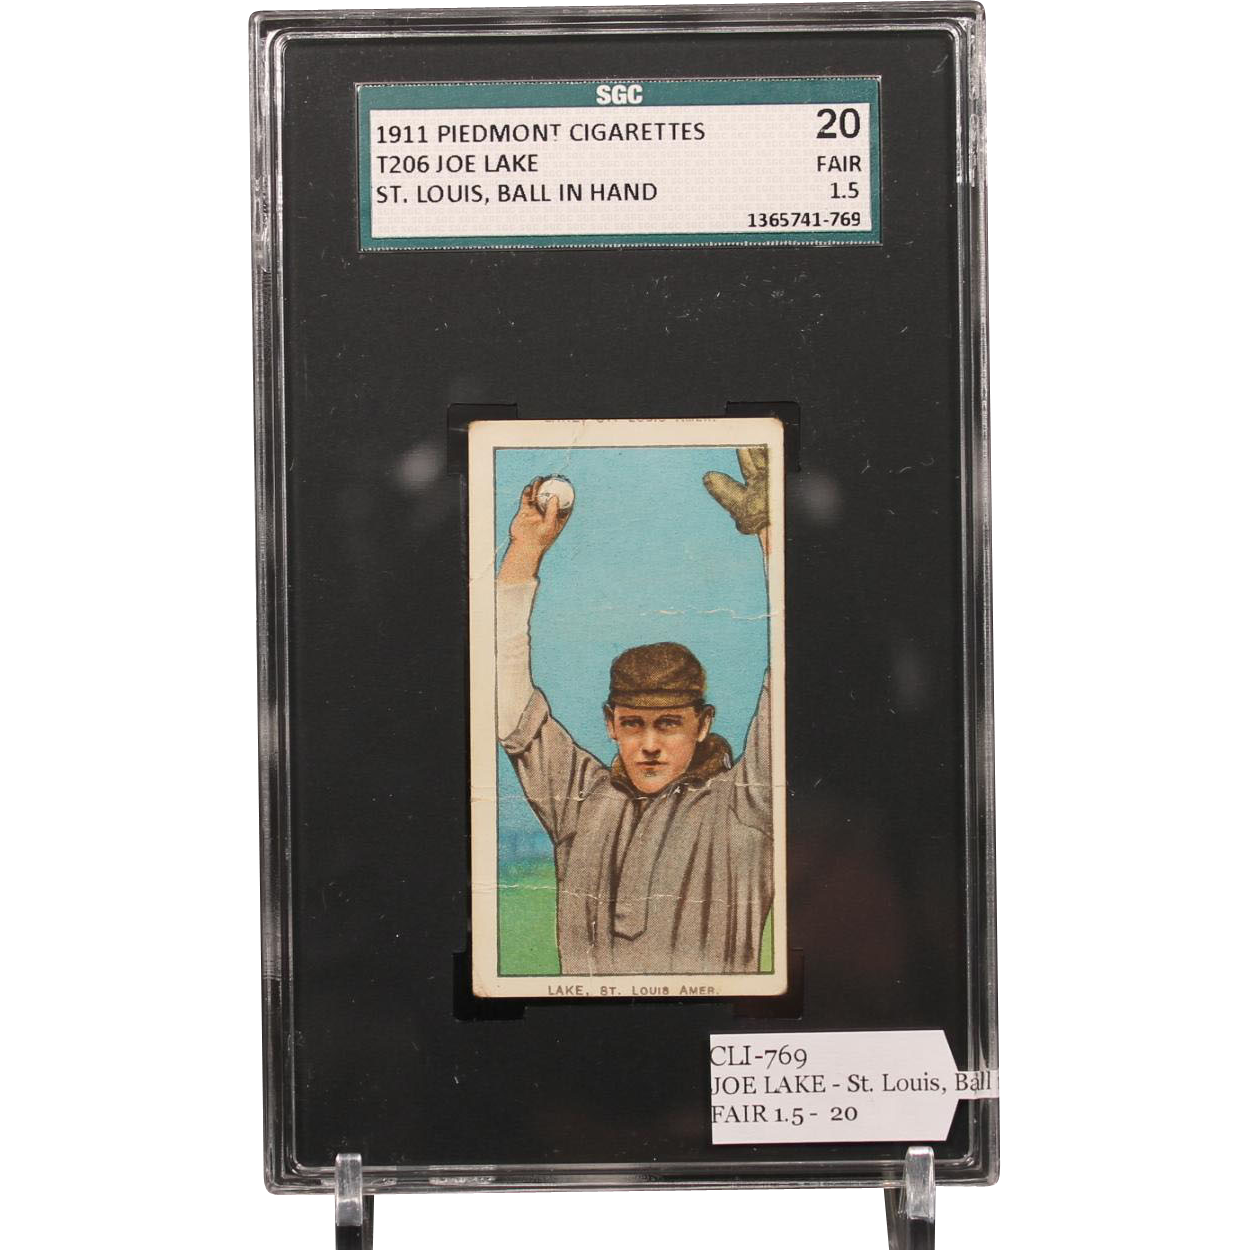 T206 JOE LAKE - St. Louis, Ball in Hand SGC grade 20 FAIR 1.5